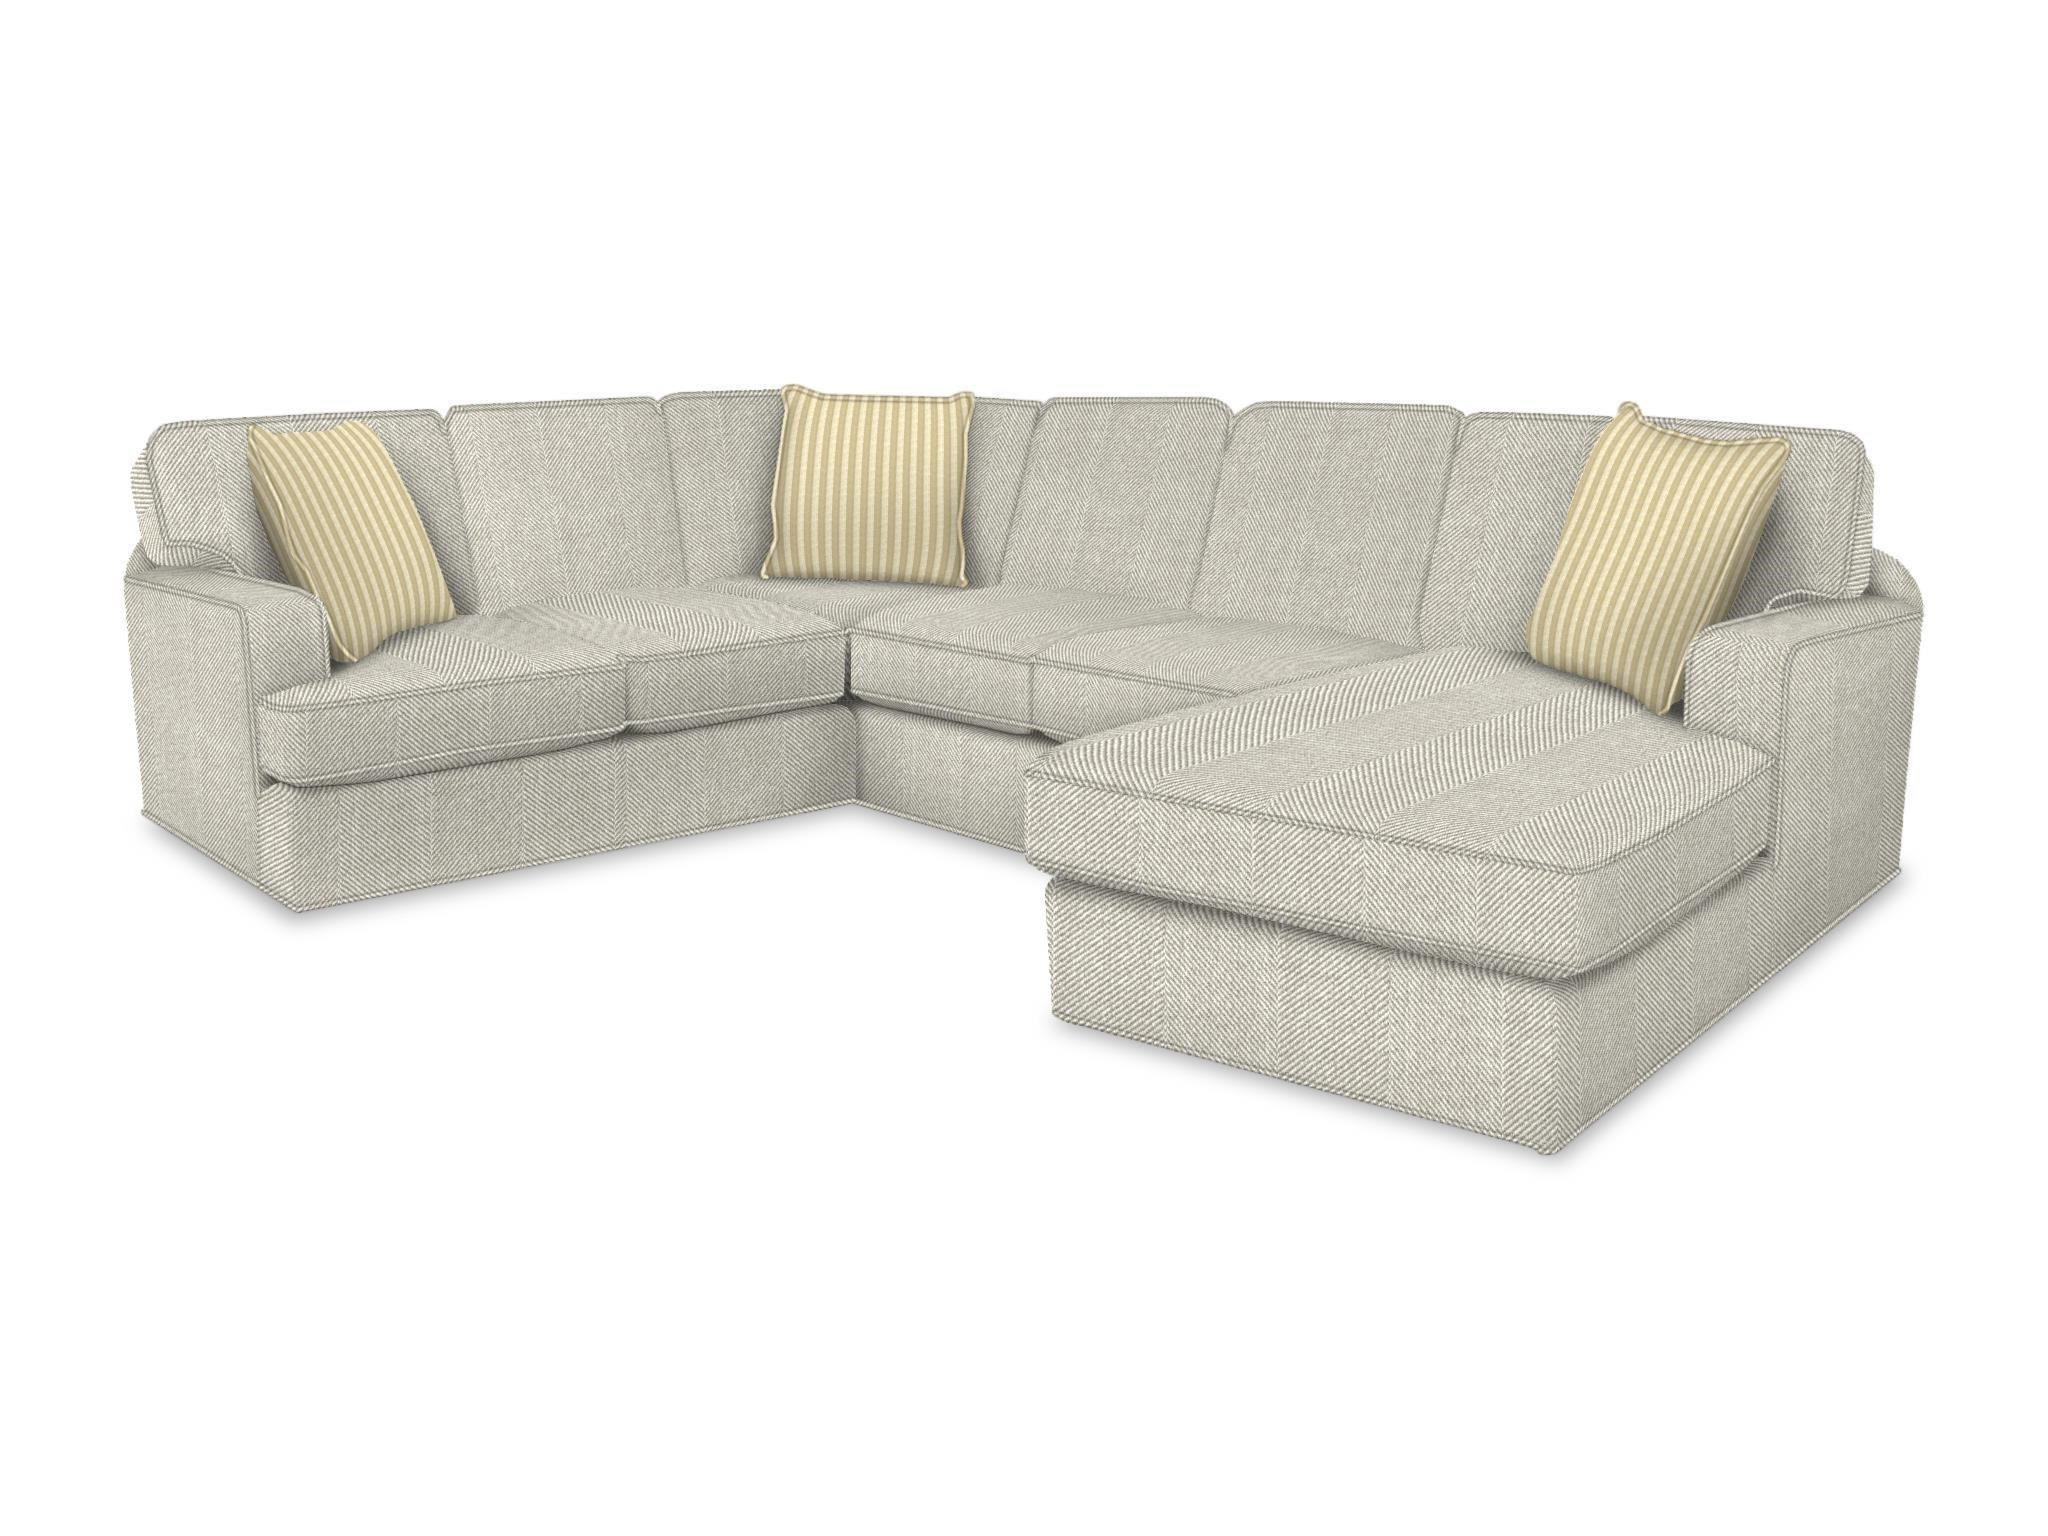 abbie right chaise sectional sofa with large cushions by england recliner sofas 17 best furniture